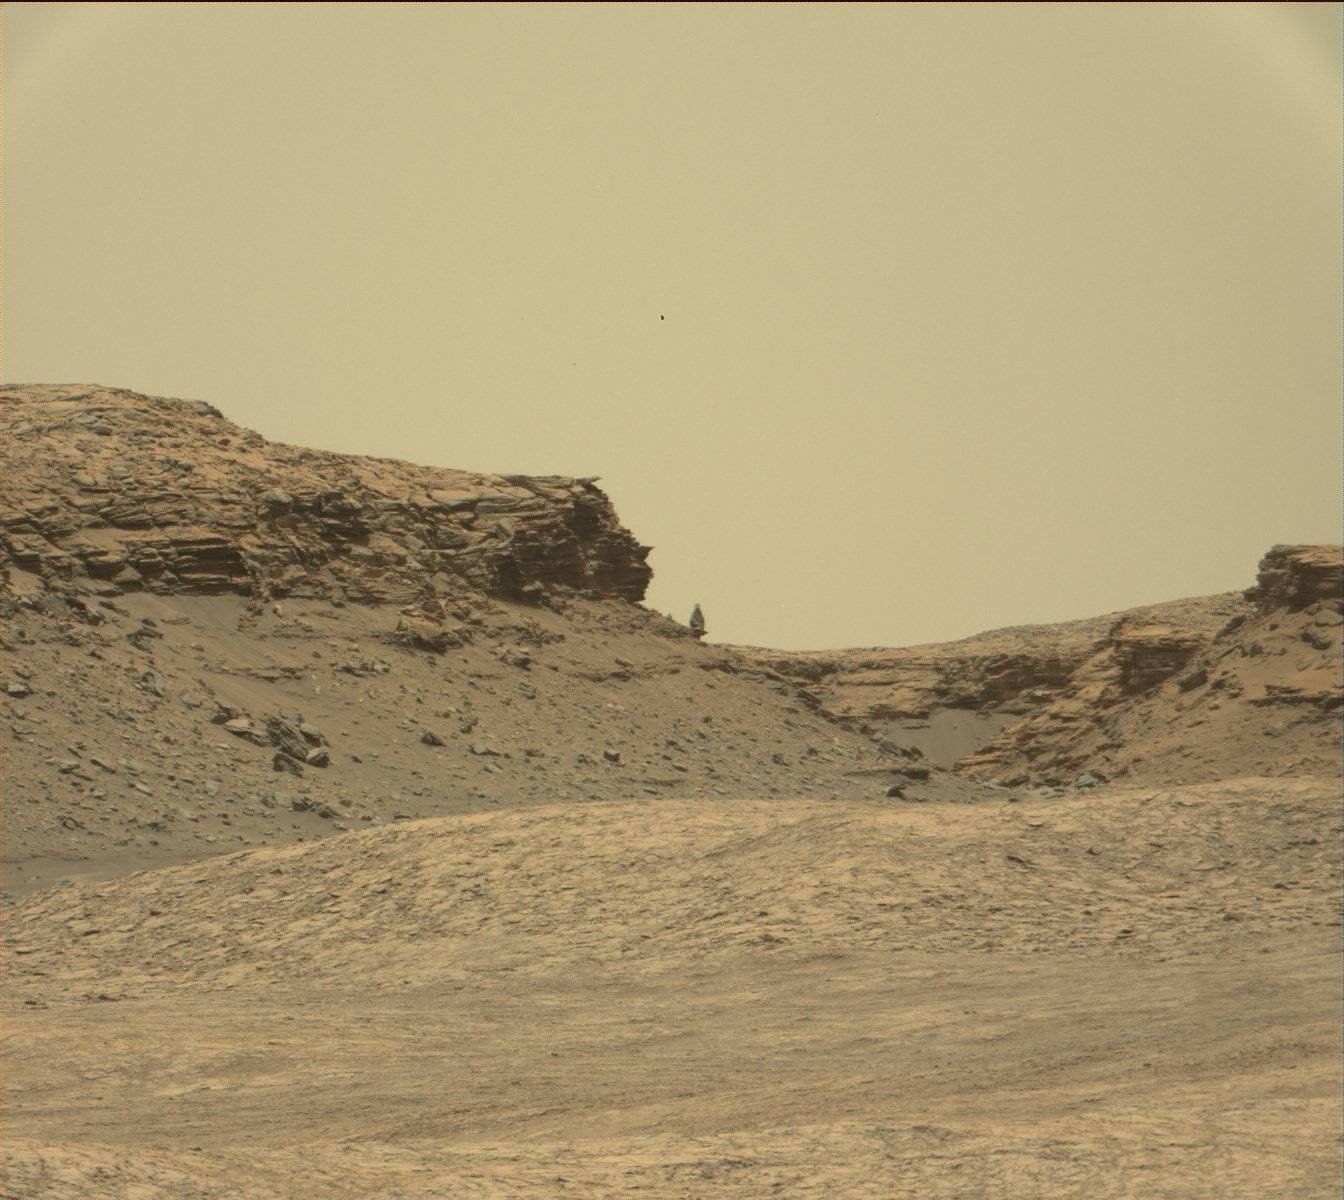 MSL - Curiosity - Safe mode - Mode survie - Juillet 2016 - Mars - JPL - NASA - panne - Mastcam - panorama - Murray buttes